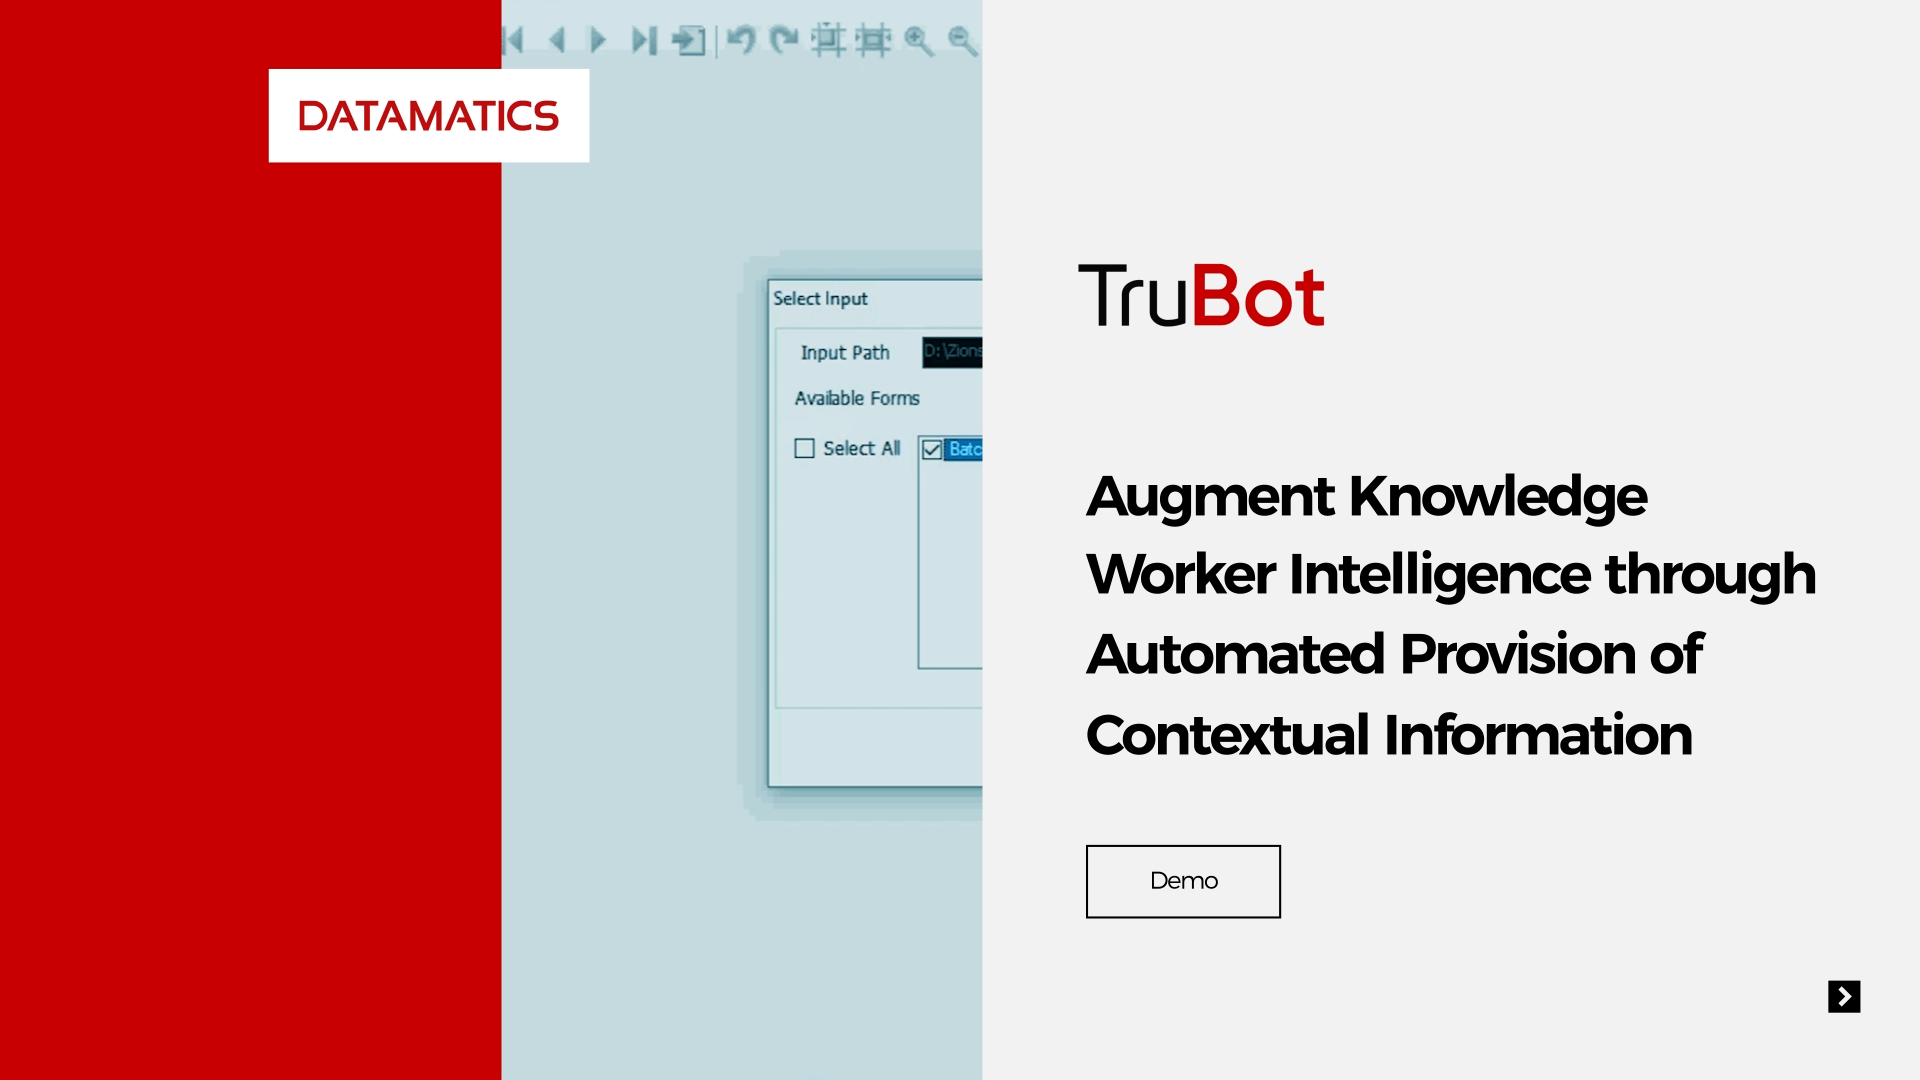 RPA assisted contextual information updation Demo